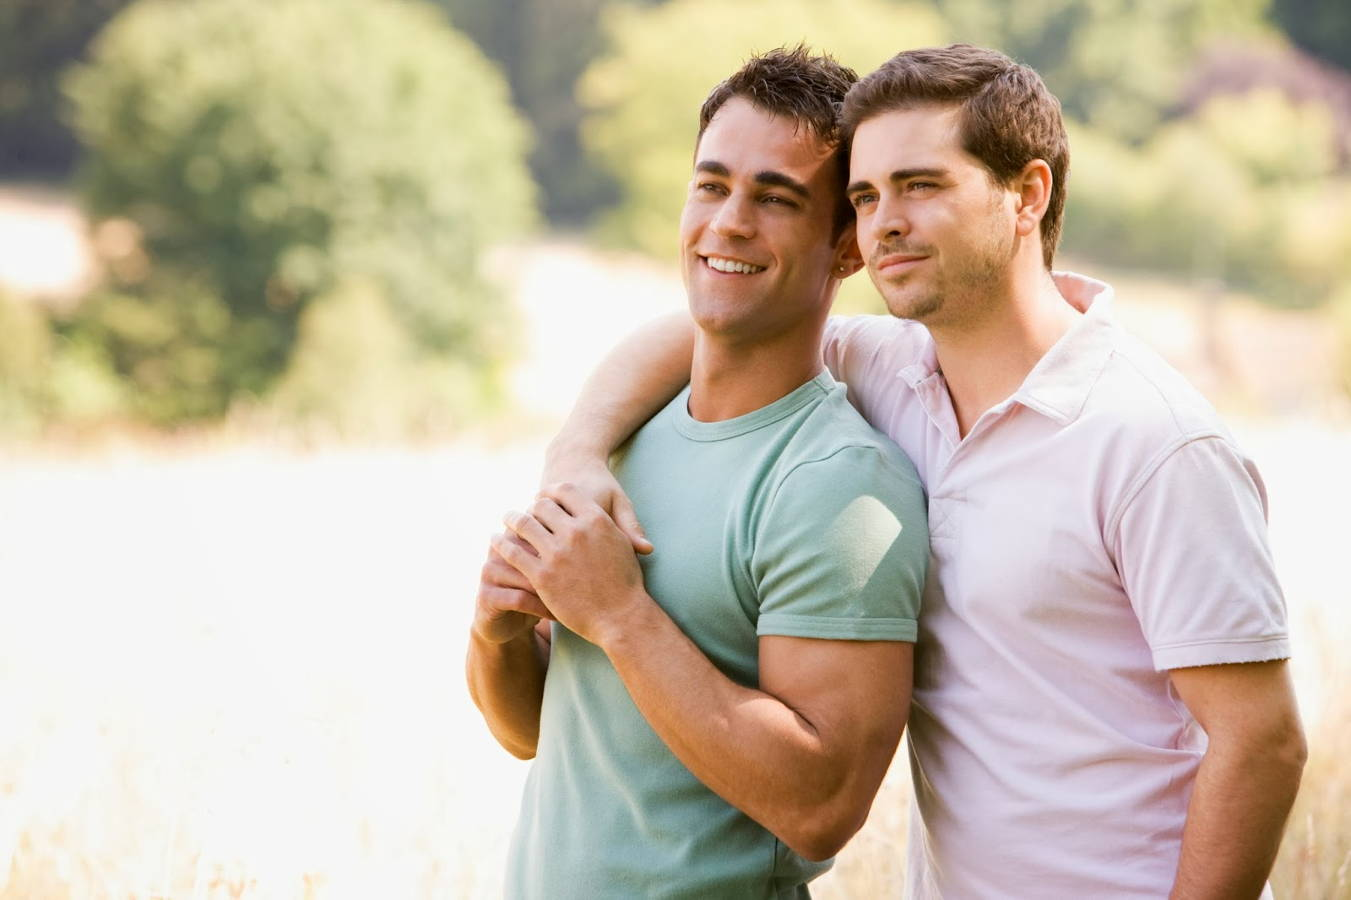 waterboro gay singles Listings for married but looking in east waterboro me find east waterboro, me -women seeking men-adult personals site: seeking discreet married dating affairs.